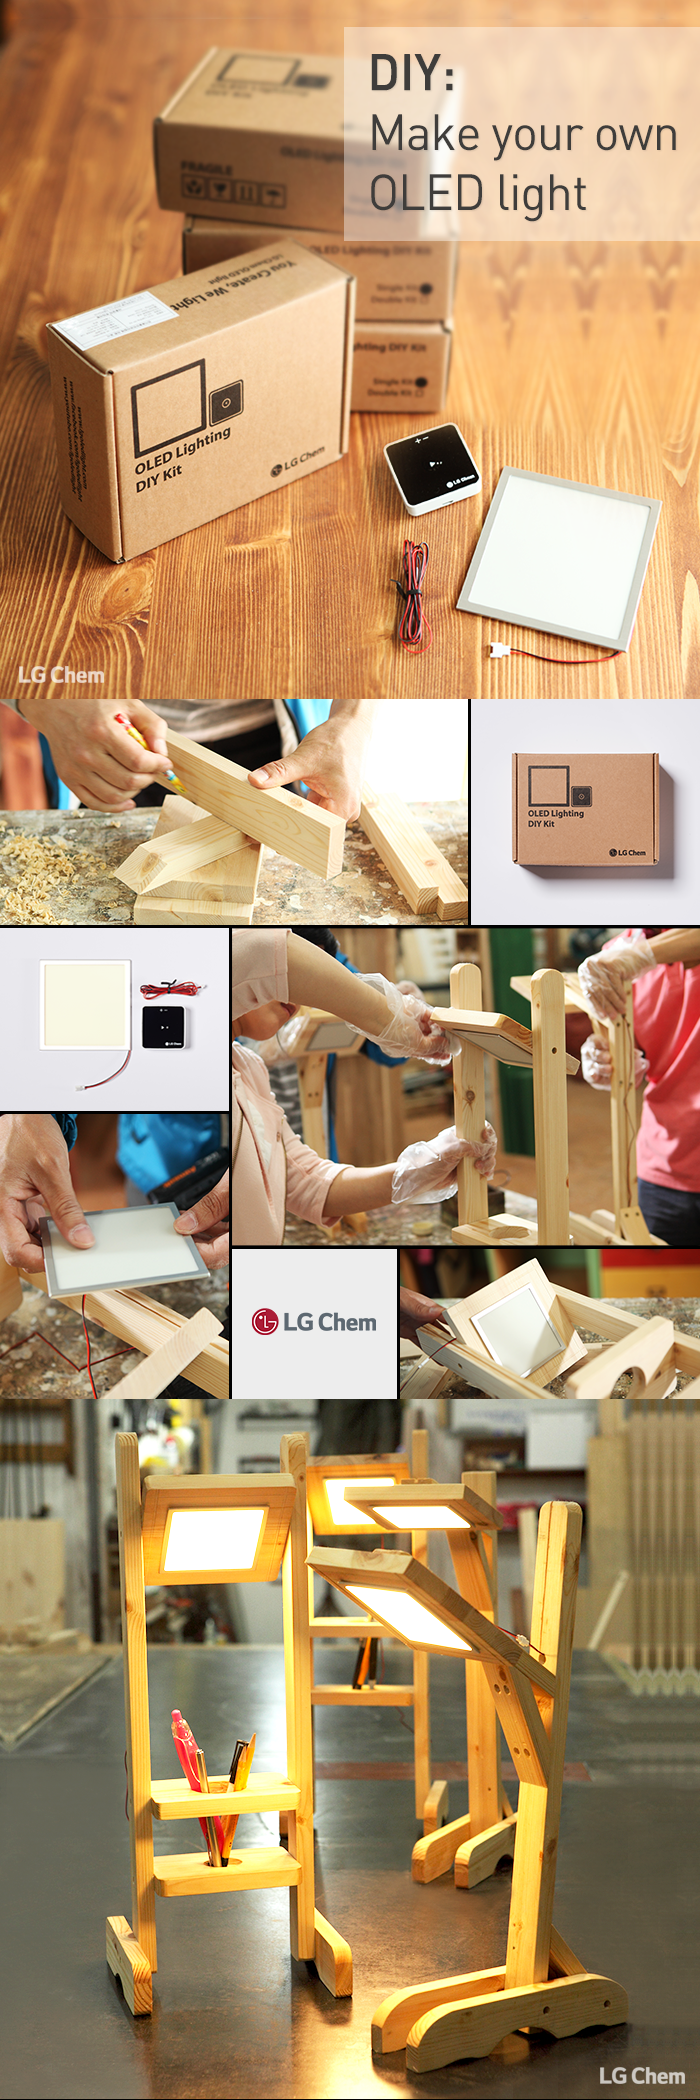 Turn your inspiration into your own OLED luminaire with LG Display OLED lighting DIY Kit. You Create, We Light. Check out Organic Lights at http://www.organic-lights.com/en/lg-display-do-it-yourself-kit.html